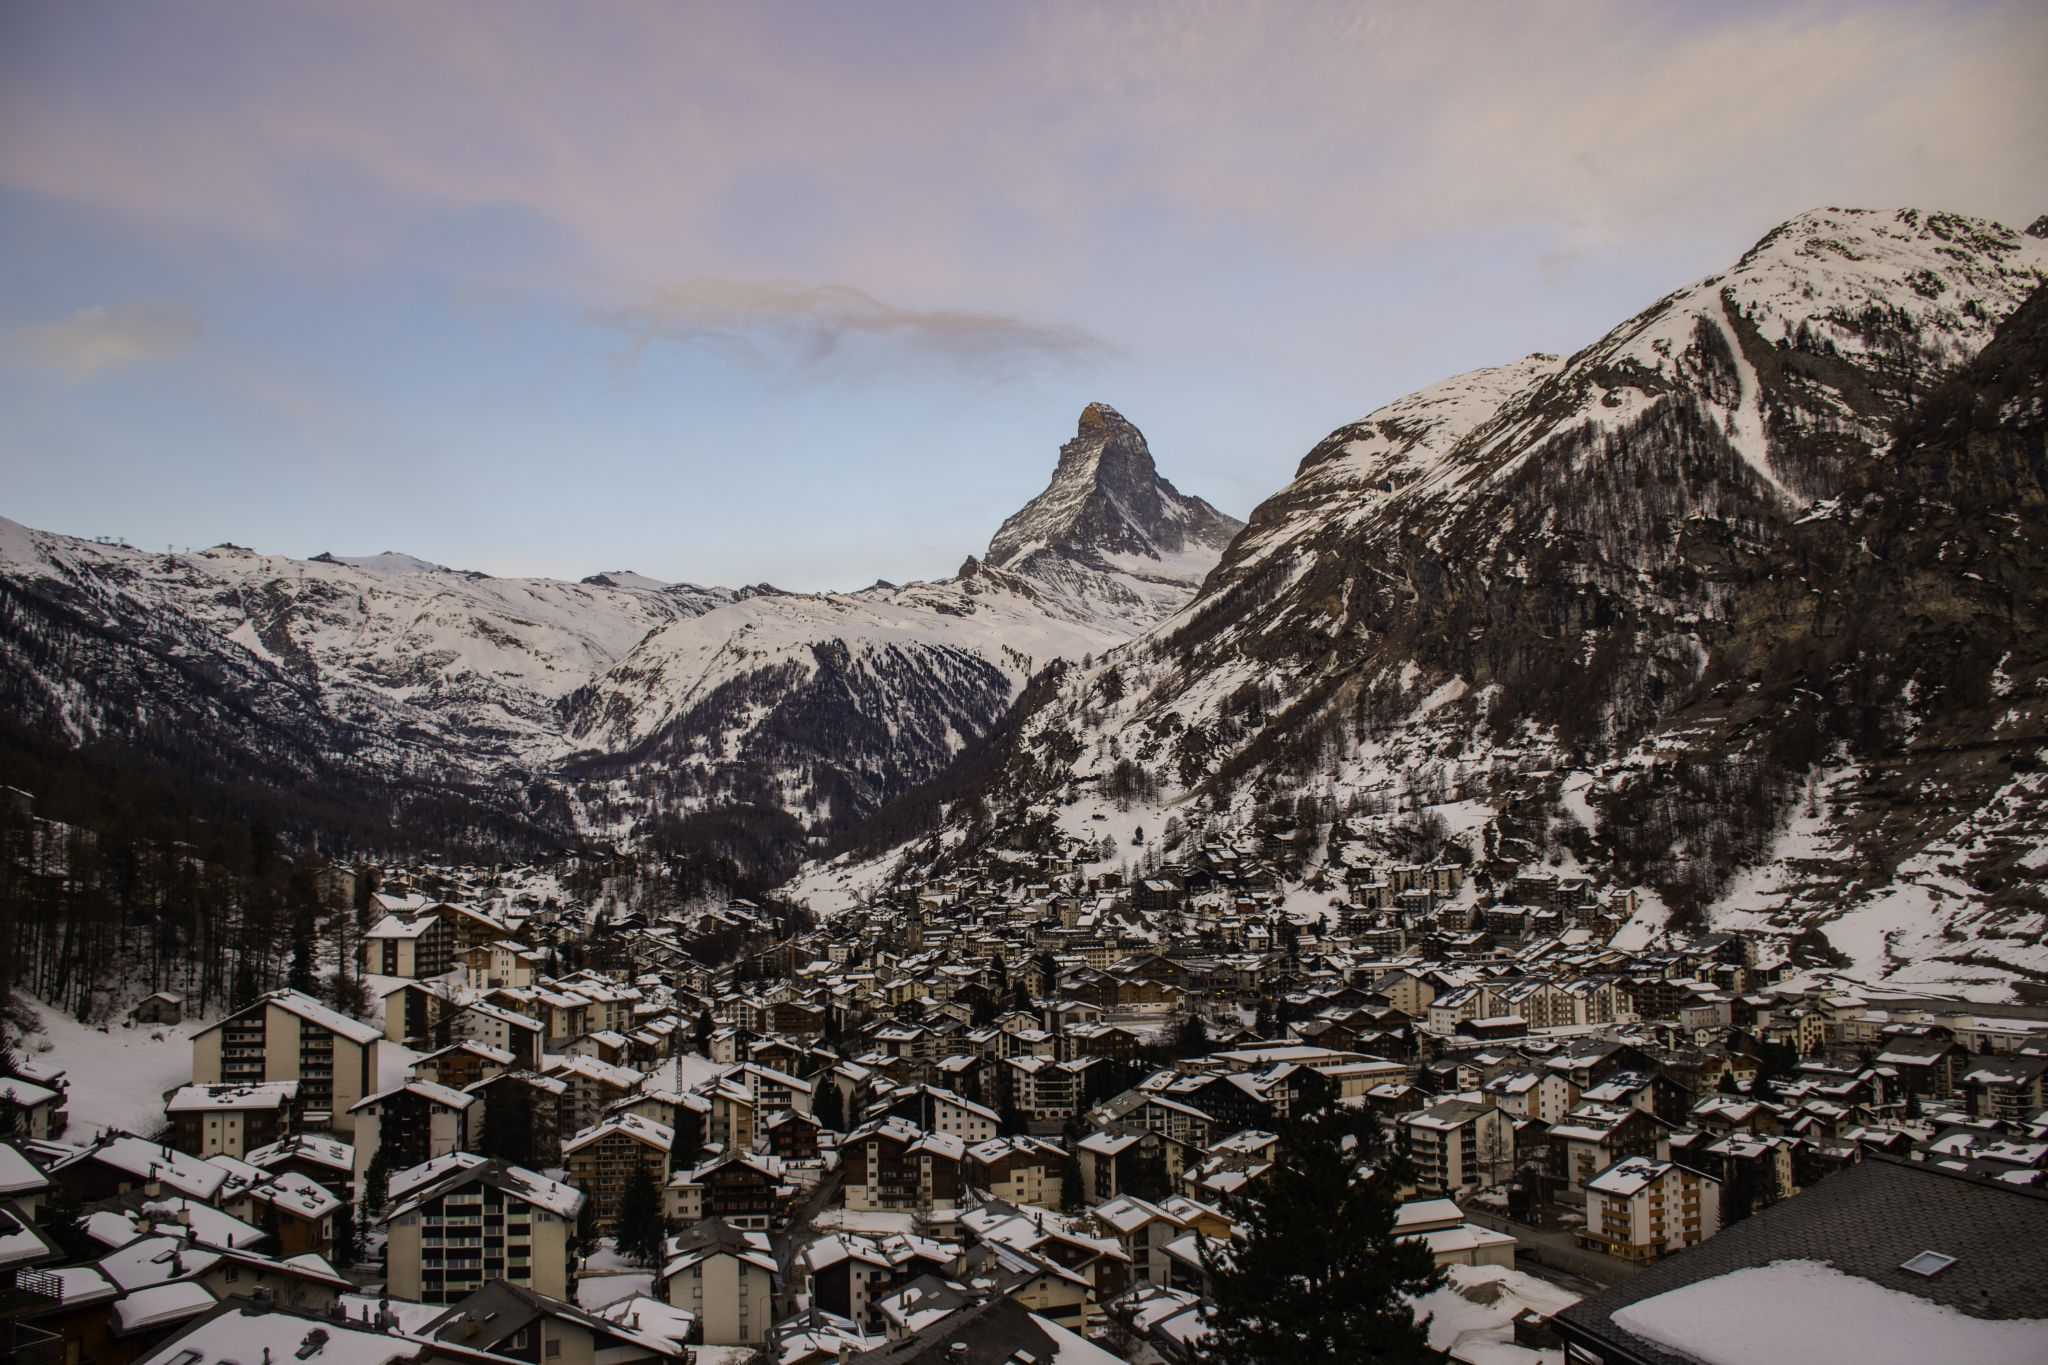 Zermatt Matterhorn Viewpoint, Switzerland